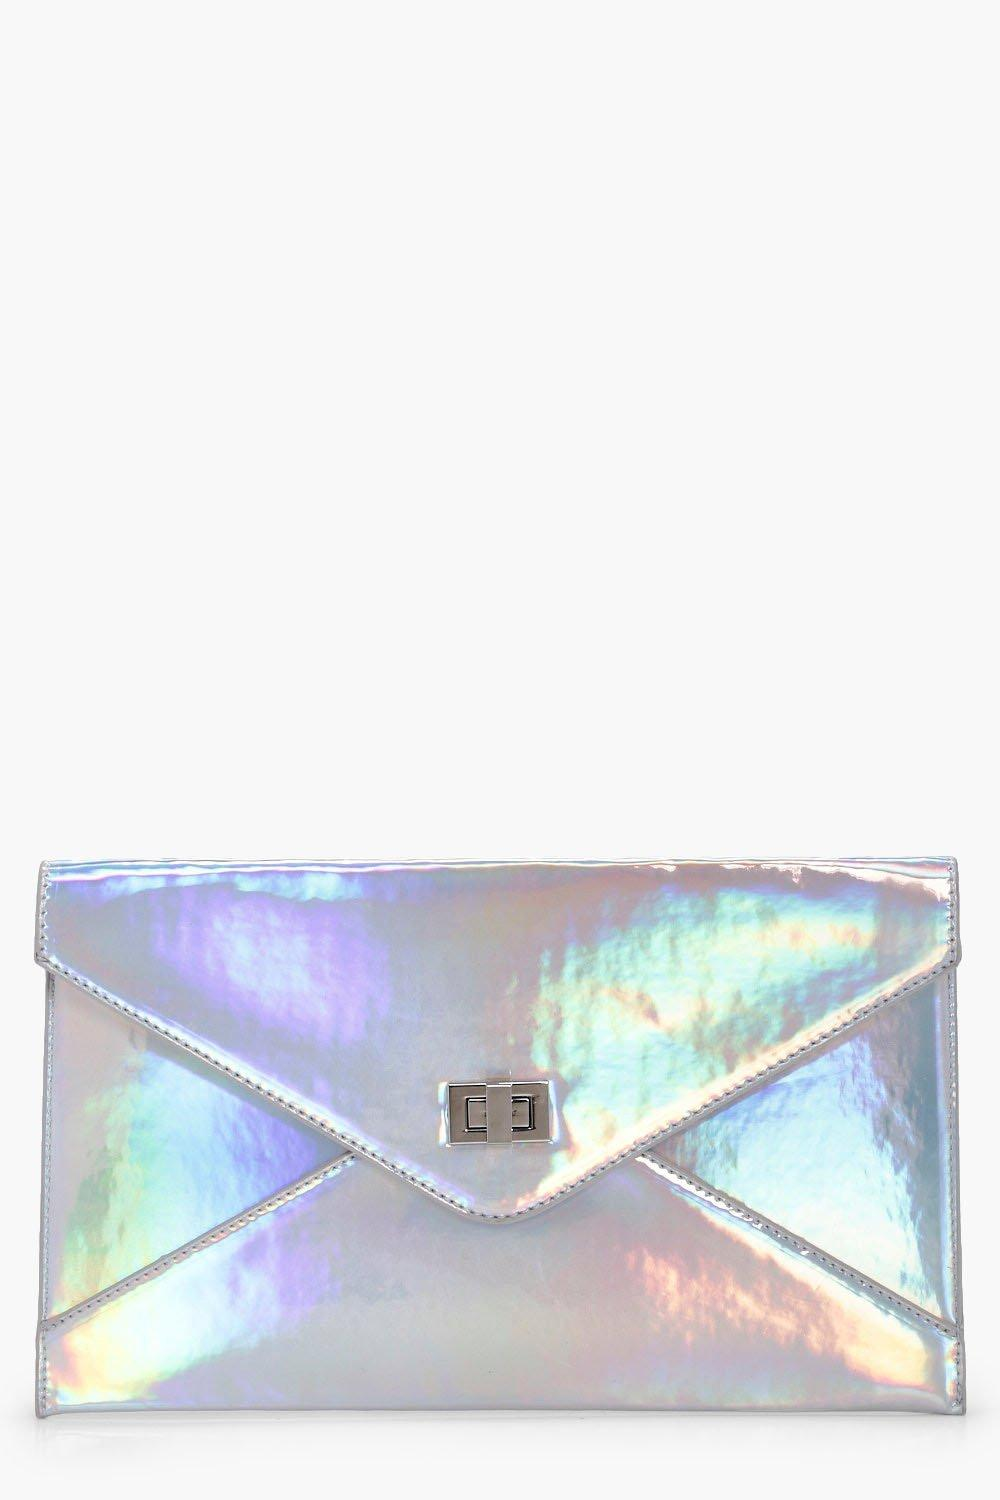 Holographic Envelope Clutch - silver - Alex Hologr